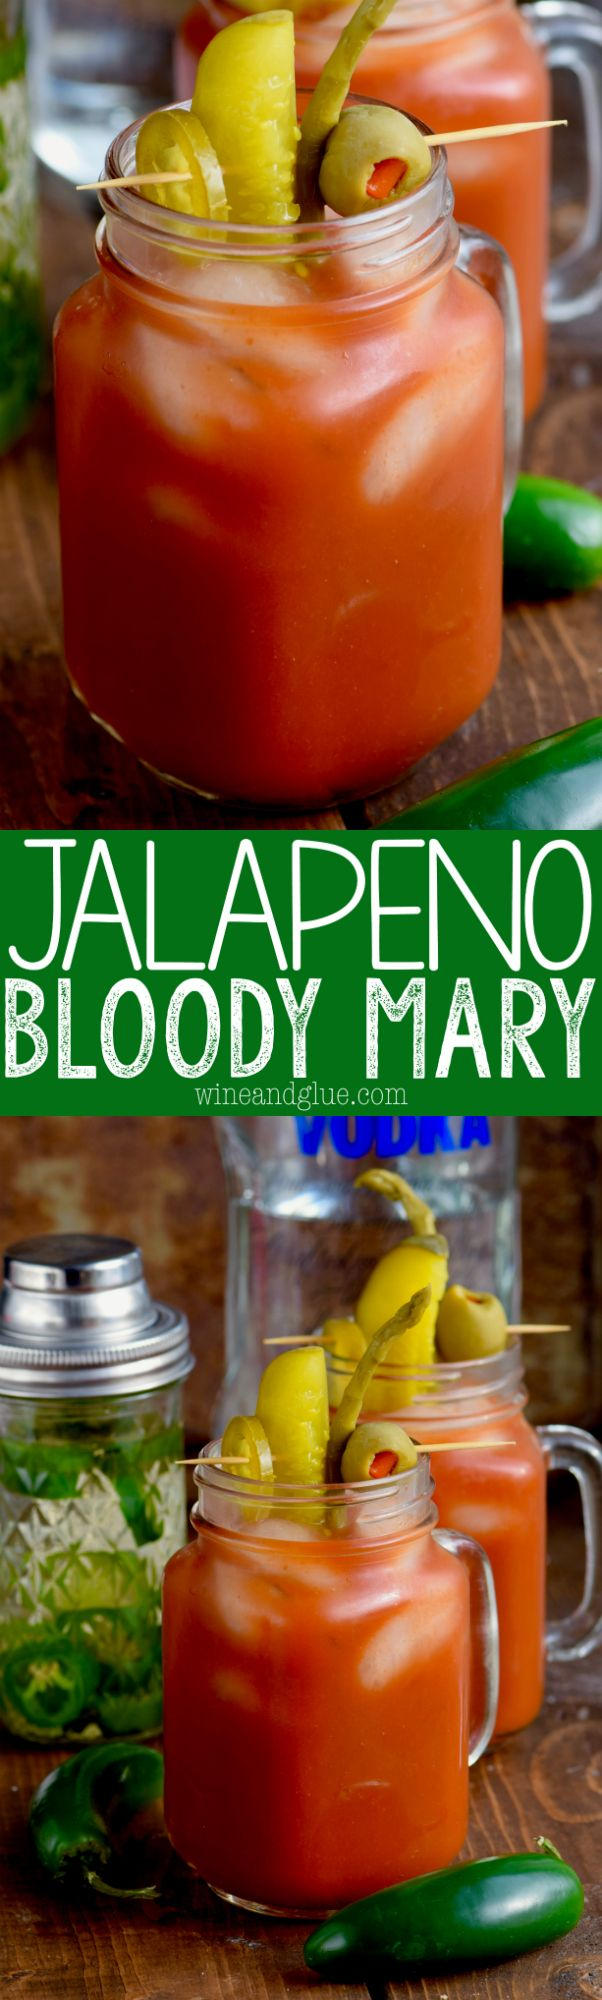 100 bloody mary recipes on pinterest bloody mary bar for Morning cocktails with vodka